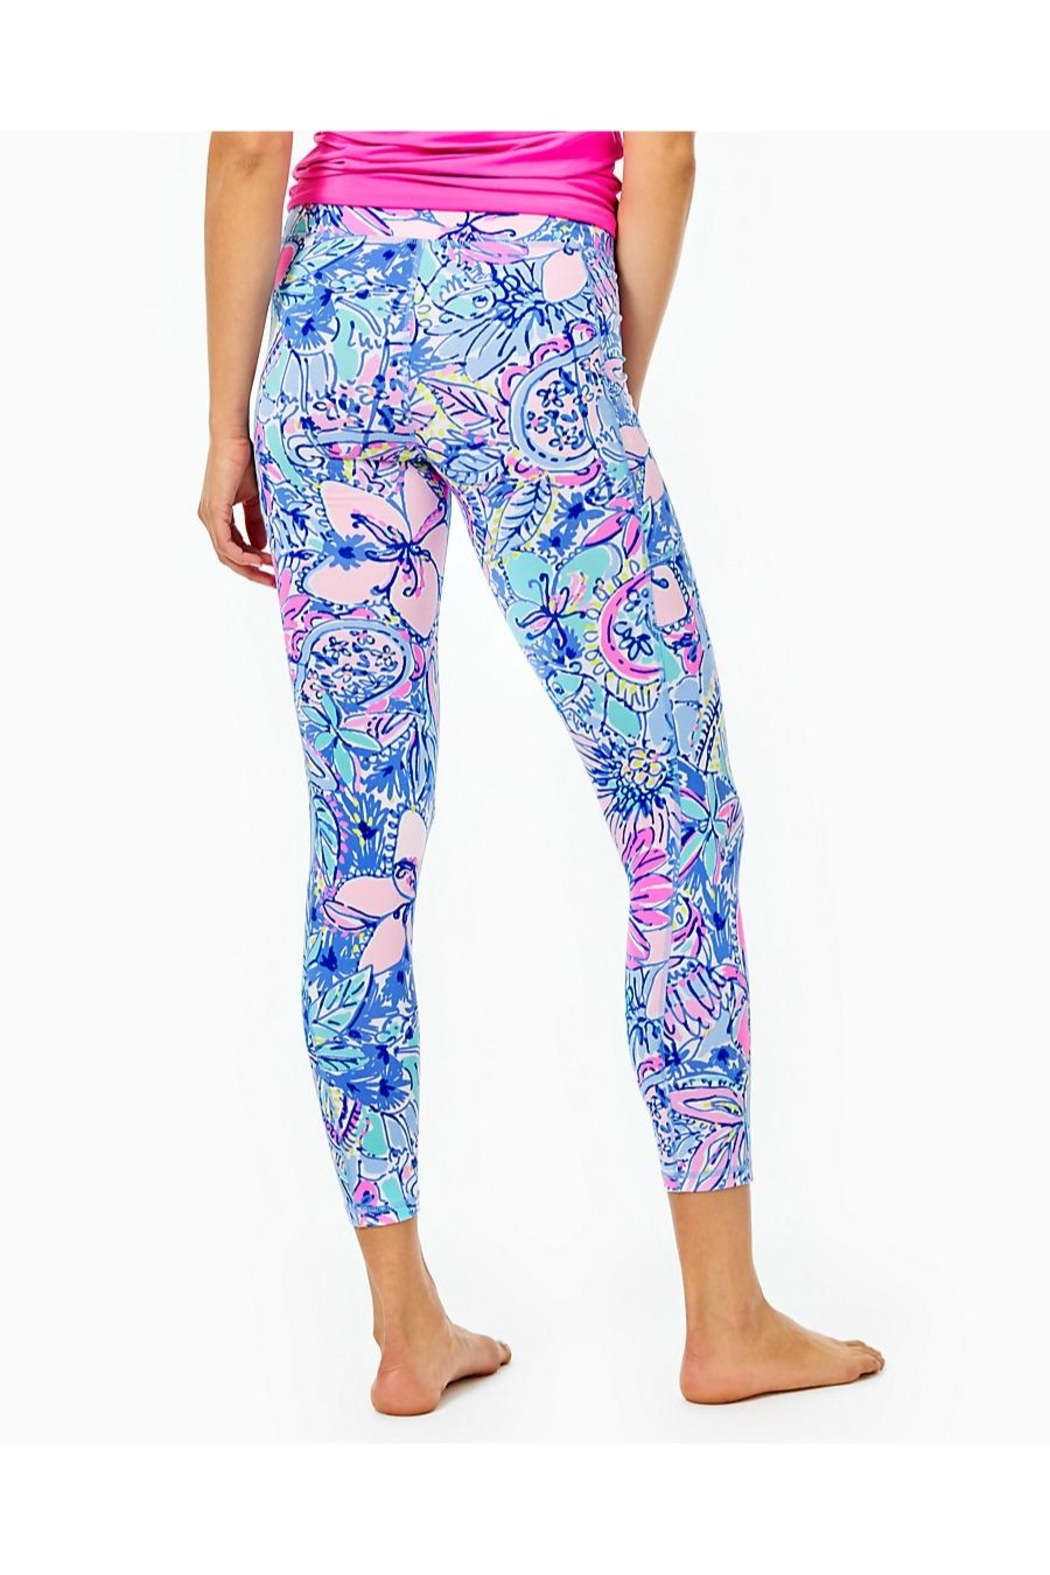 Lilly Pulitzer Weekender High-Rise Legging - Front Full Image